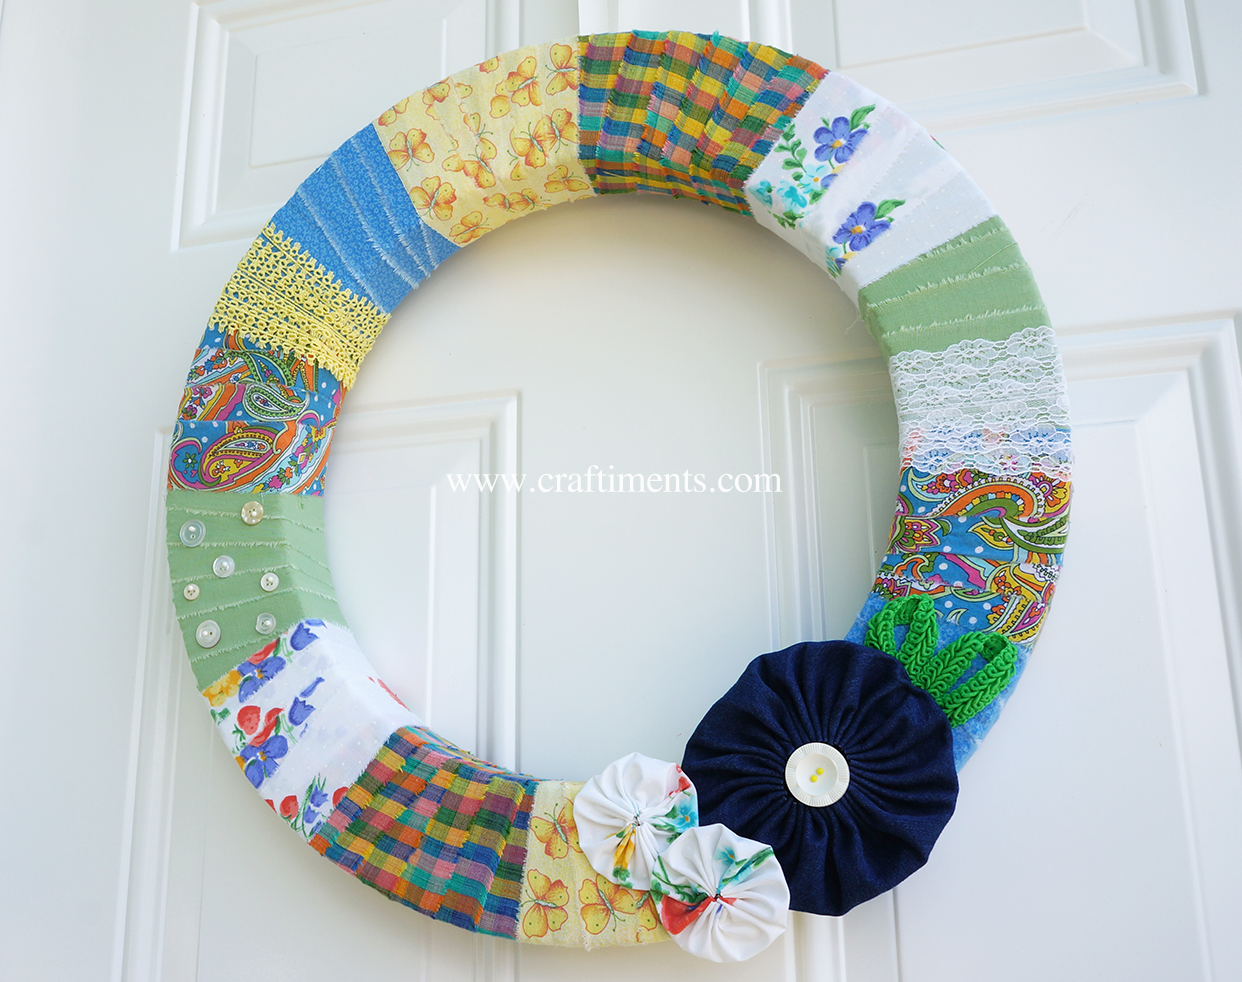 Styrofoam wreath wrapped with torn fabric strips, lace and trim, with buttons and yoyo fabric flowers